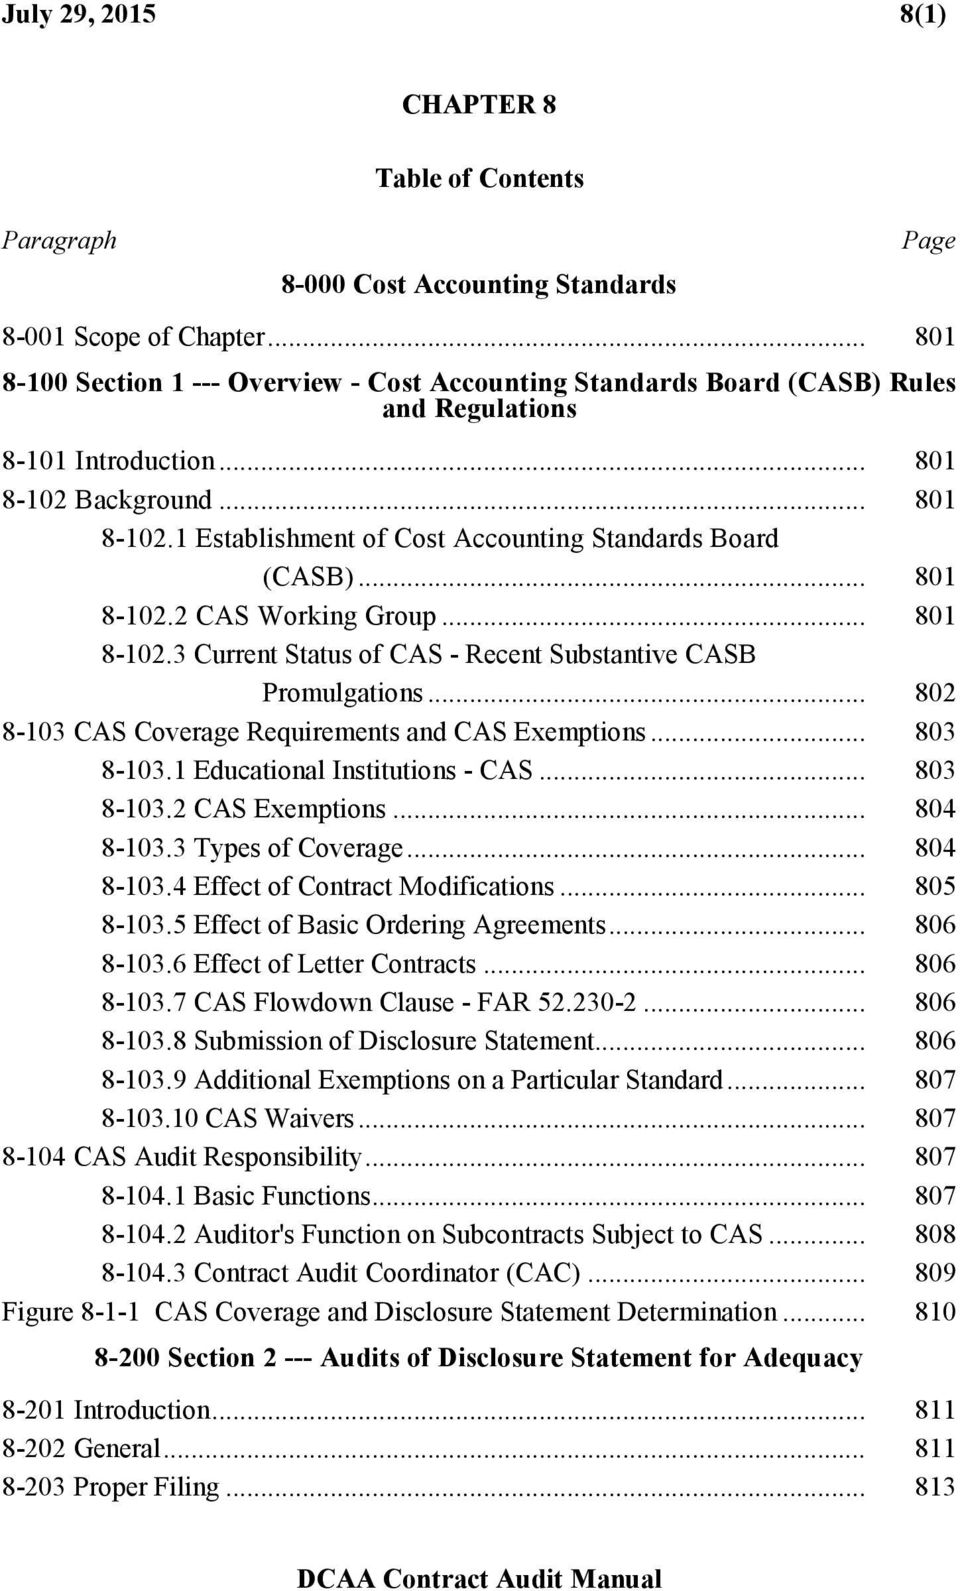 .. 801 8-102.2 CAS Working Group... 801 8-102.3 Current Status of CAS - Recent Substantive CASB Promulgations... 802 8-103 CAS Coverage Requirements and CAS Exemptions... 803 8-103.